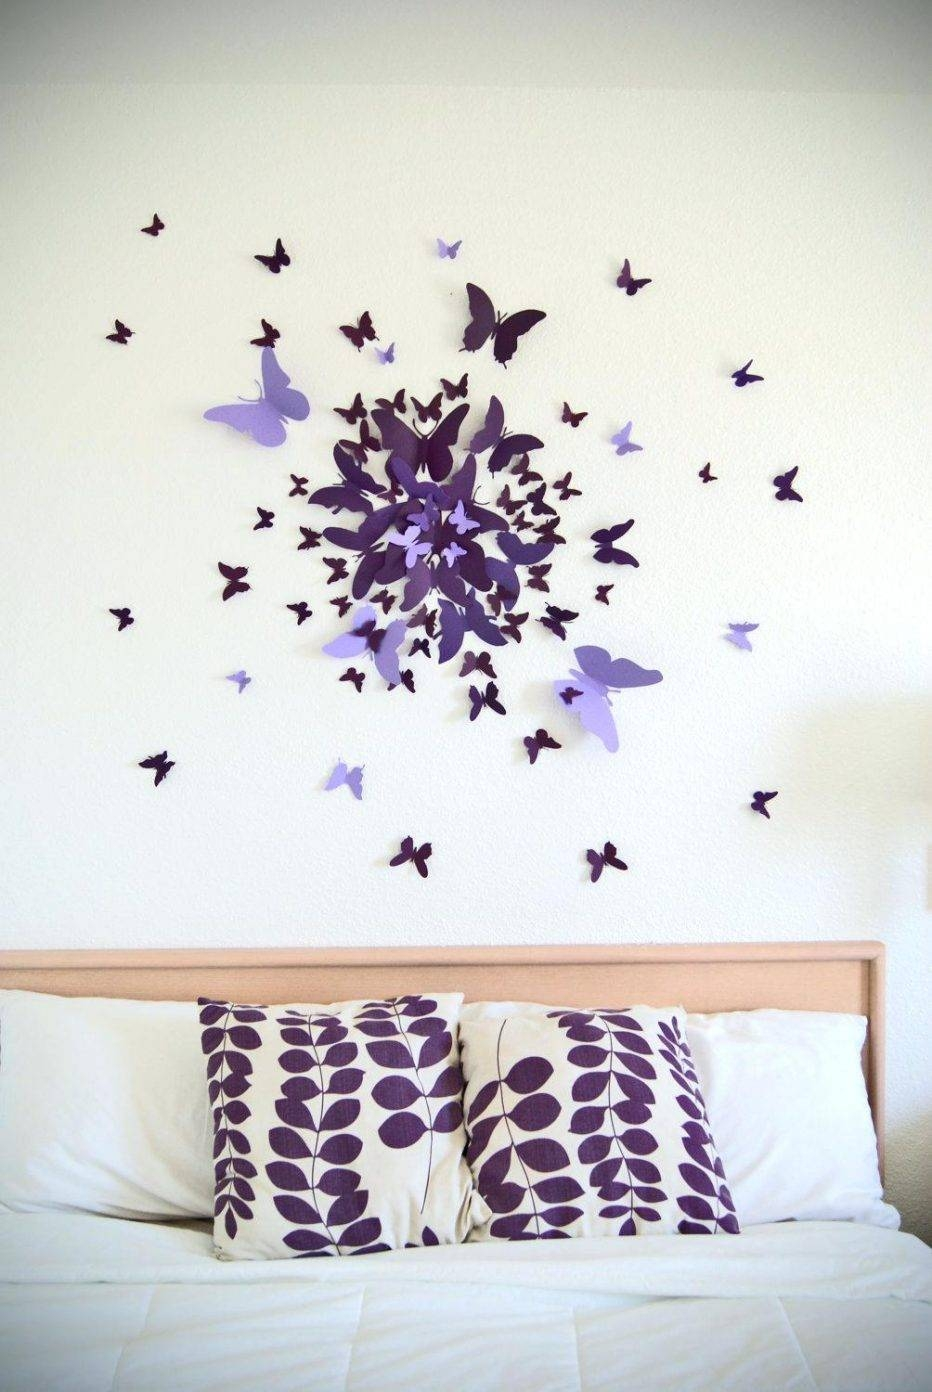 Wall Decor : 141 Large Metal Butterfly Wall Decor Innovative Throughout Most Recently Released Vintage 3d Wall Art (View 14 of 20)